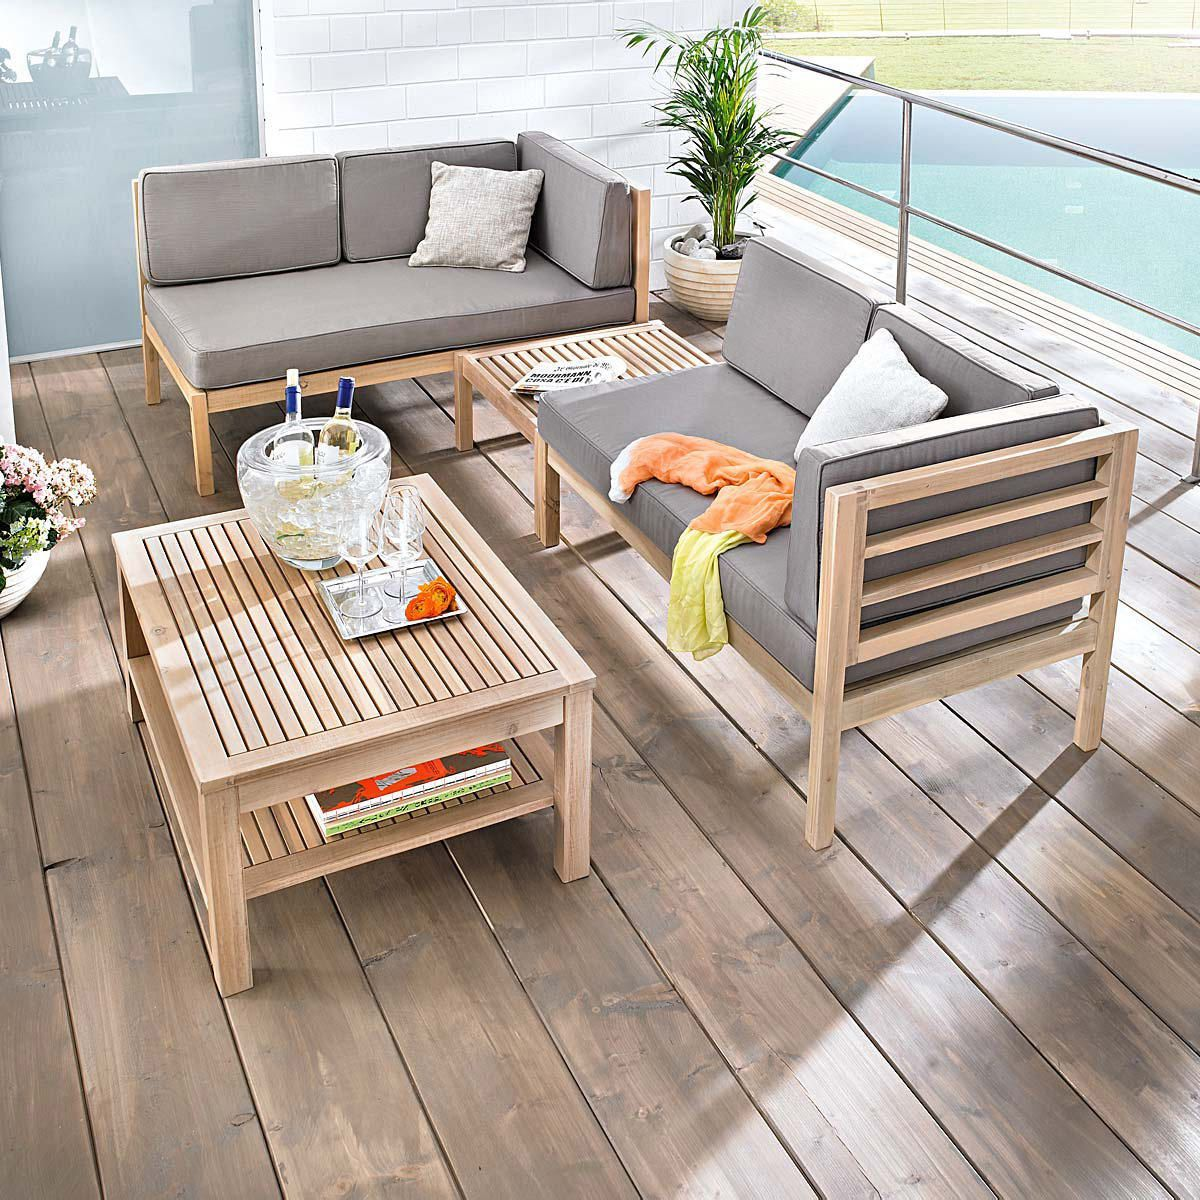 gartenm bel set holz 3 tlg. Black Bedroom Furniture Sets. Home Design Ideas